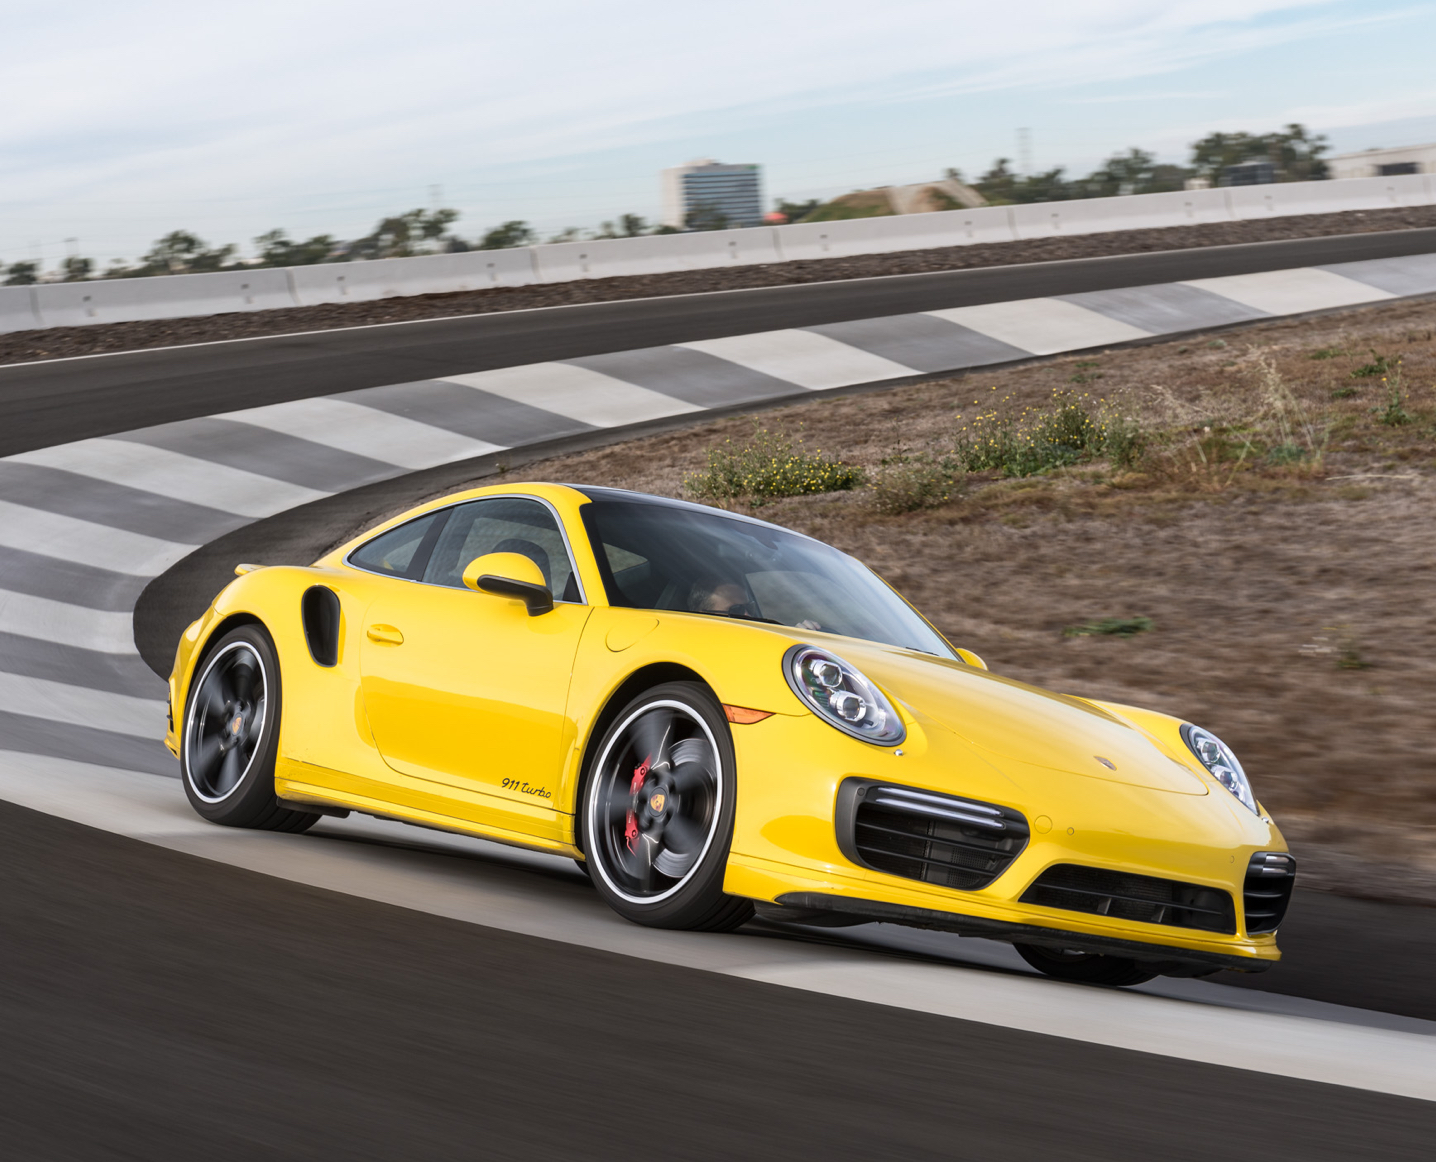 Yellow 911 Turbo driving